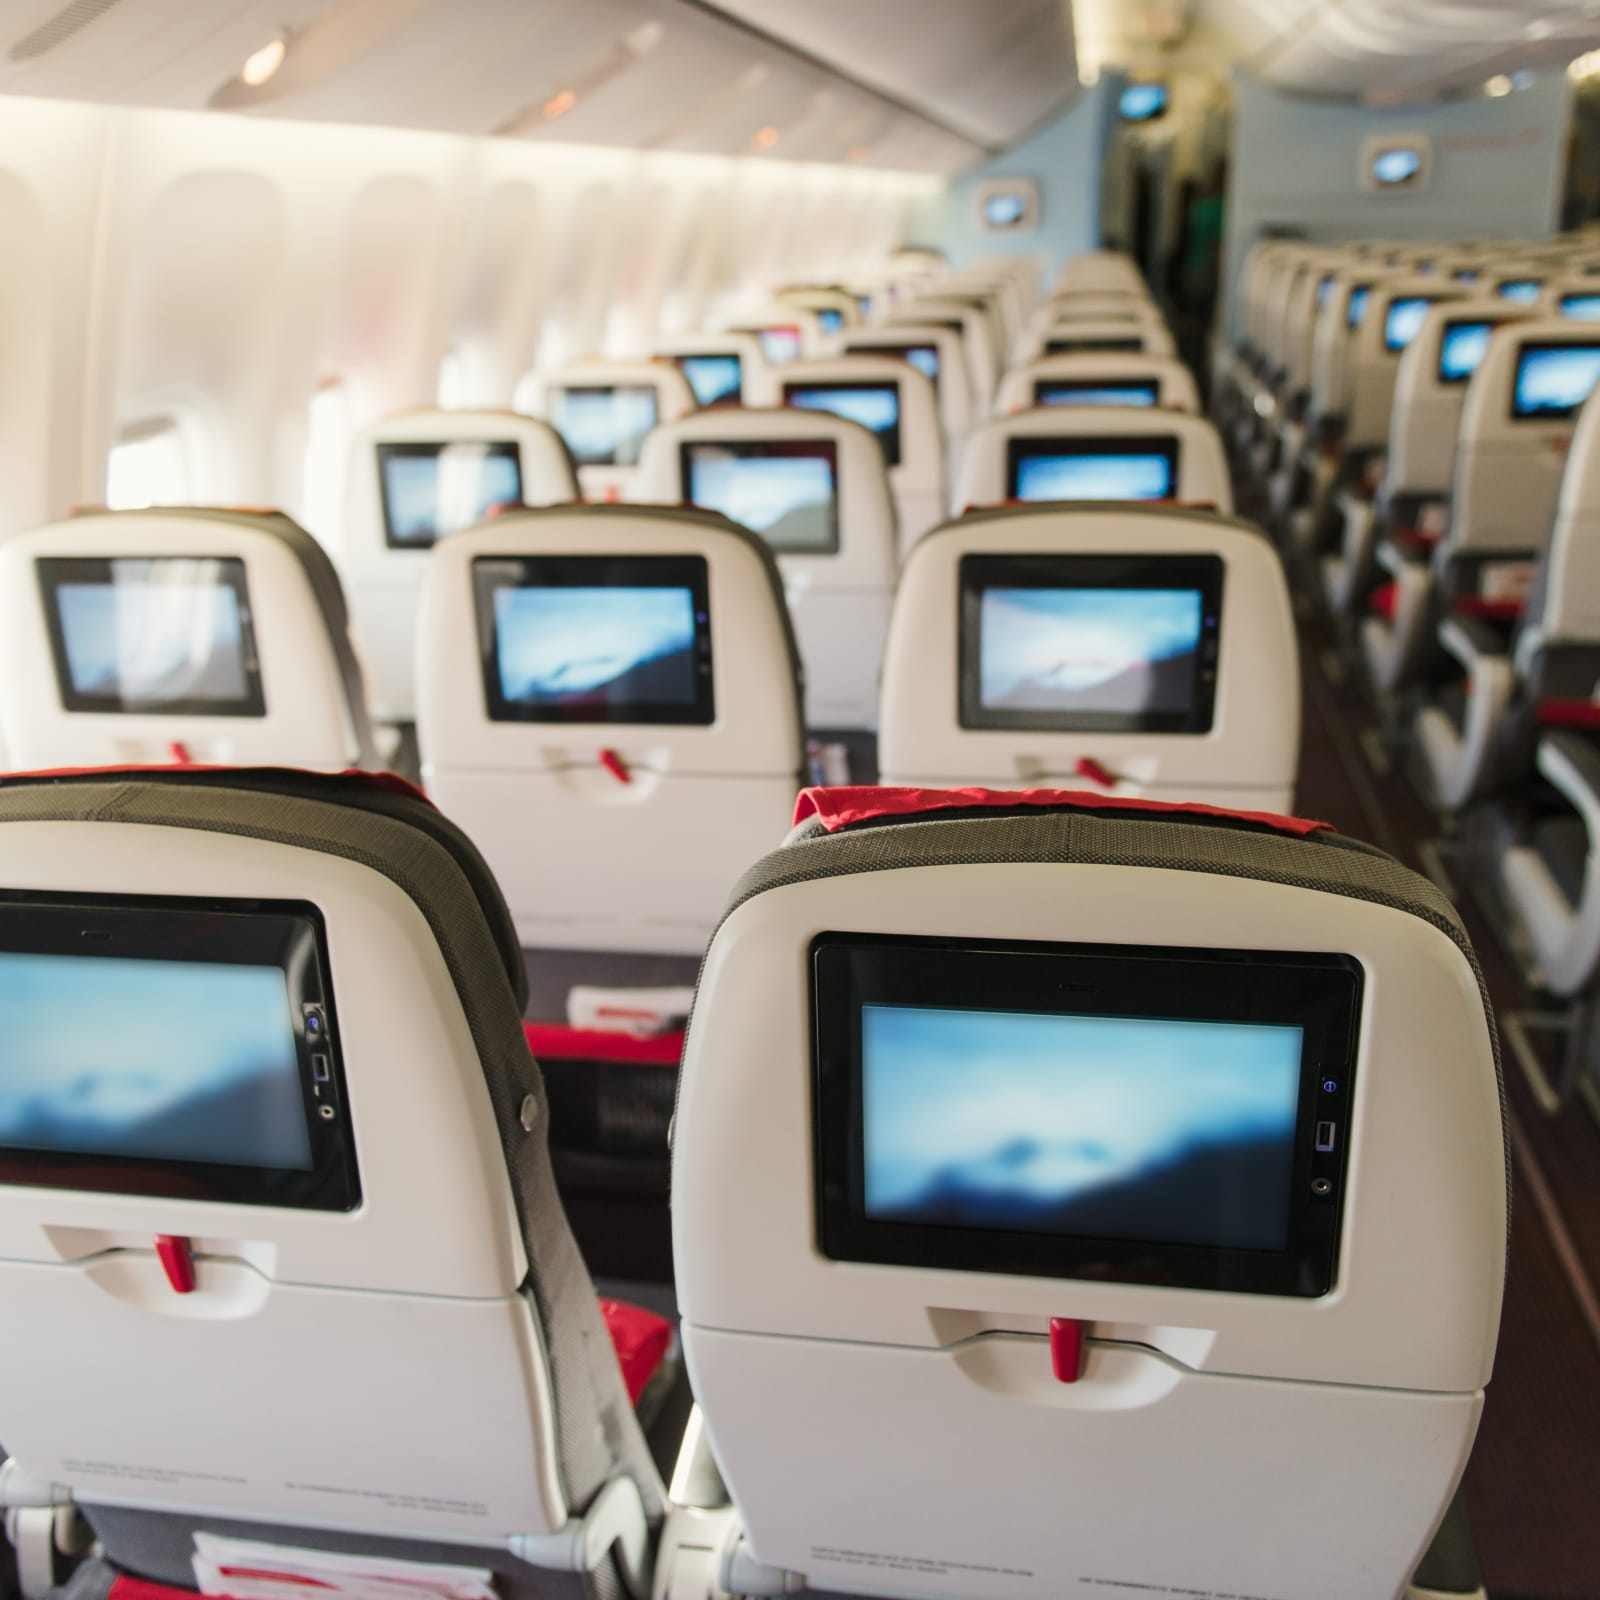 Delta Air Lines Upgrades - Everything you need to know - ValuePenguin